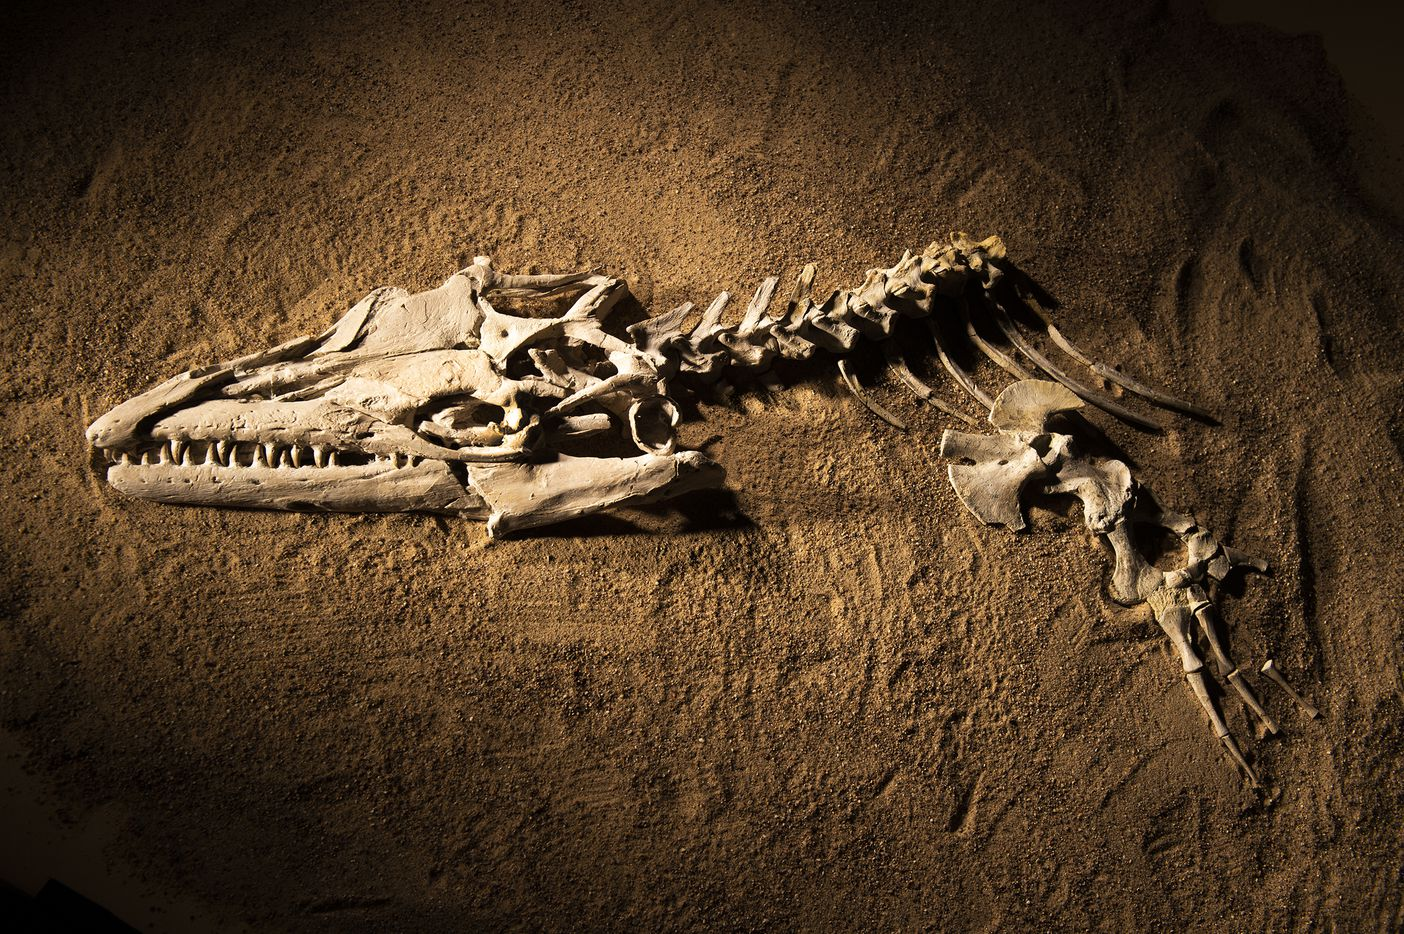 "The fossil skull and partial skeleton of mosasaur Angolasaurus bocagei excavated from Angola'­s coastal cliffs for display in ""Sea Monsters Unearthed."" When the South Atlantic ocean basin was still young, a new deep-water connection between the Southern and Northern Hemispheres allowed giant marine reptiles from the north to move into Angola's coastal waters. Mosasaurs, drawn by the region's plentiful food, were among the first reptiles to prowl these waters. These giant lizards once dominated ocean ecosystems around the world, including along Angola'­s coast."